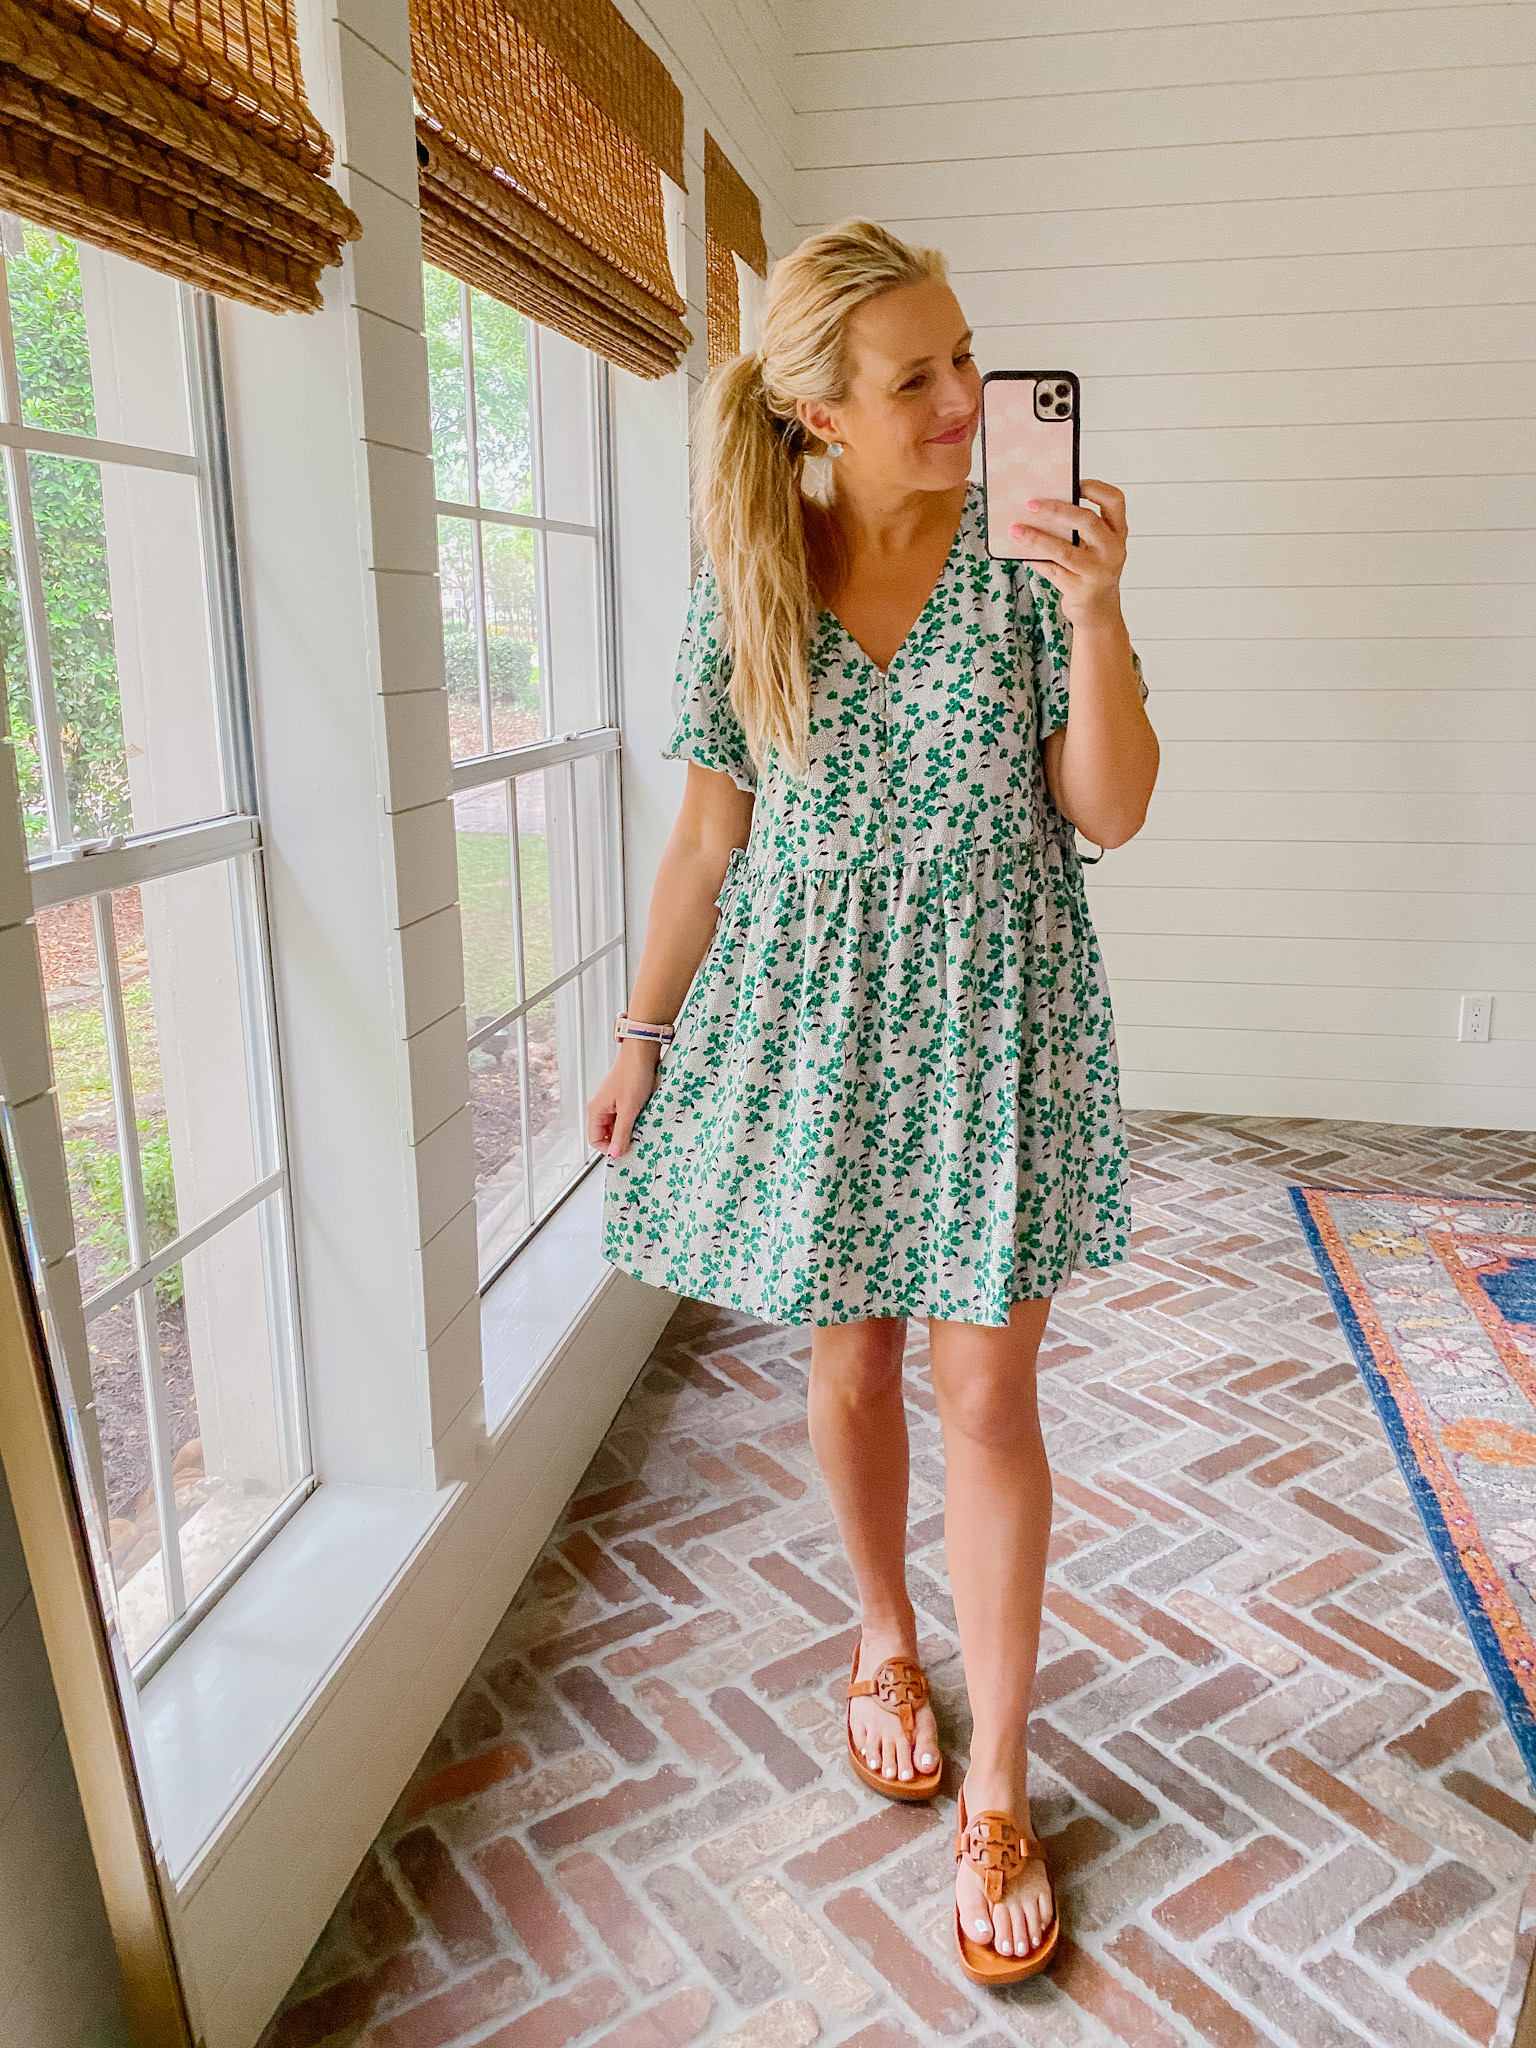 Loft Clothing by popular Houston fashion blog, The House of Fancy: image of a woman wearing a Loft green and white floral print dress with brown Tory Burch slide sandals.